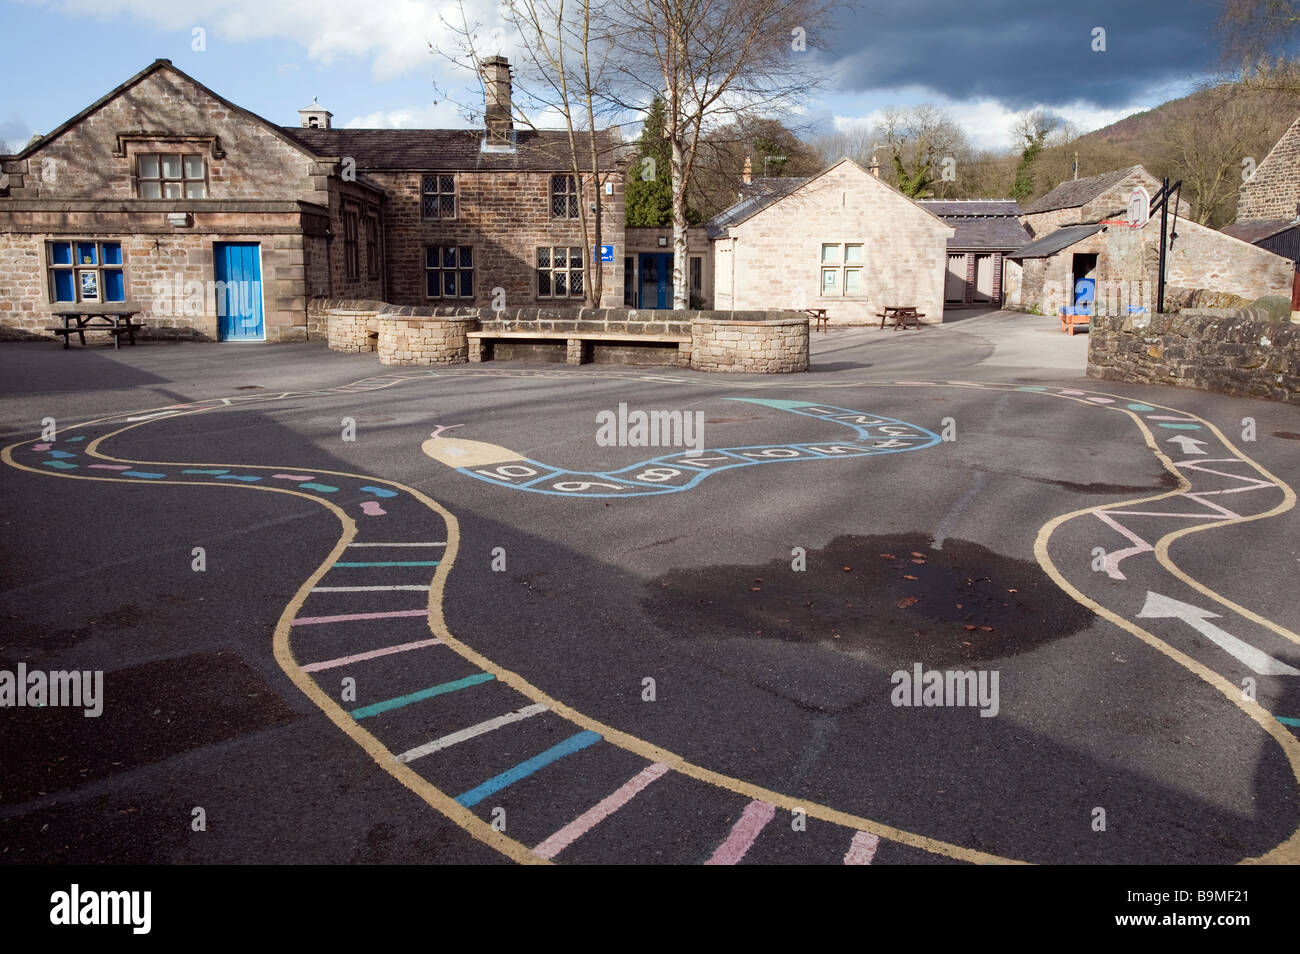 Schoolyard and playground markings - Stock Image